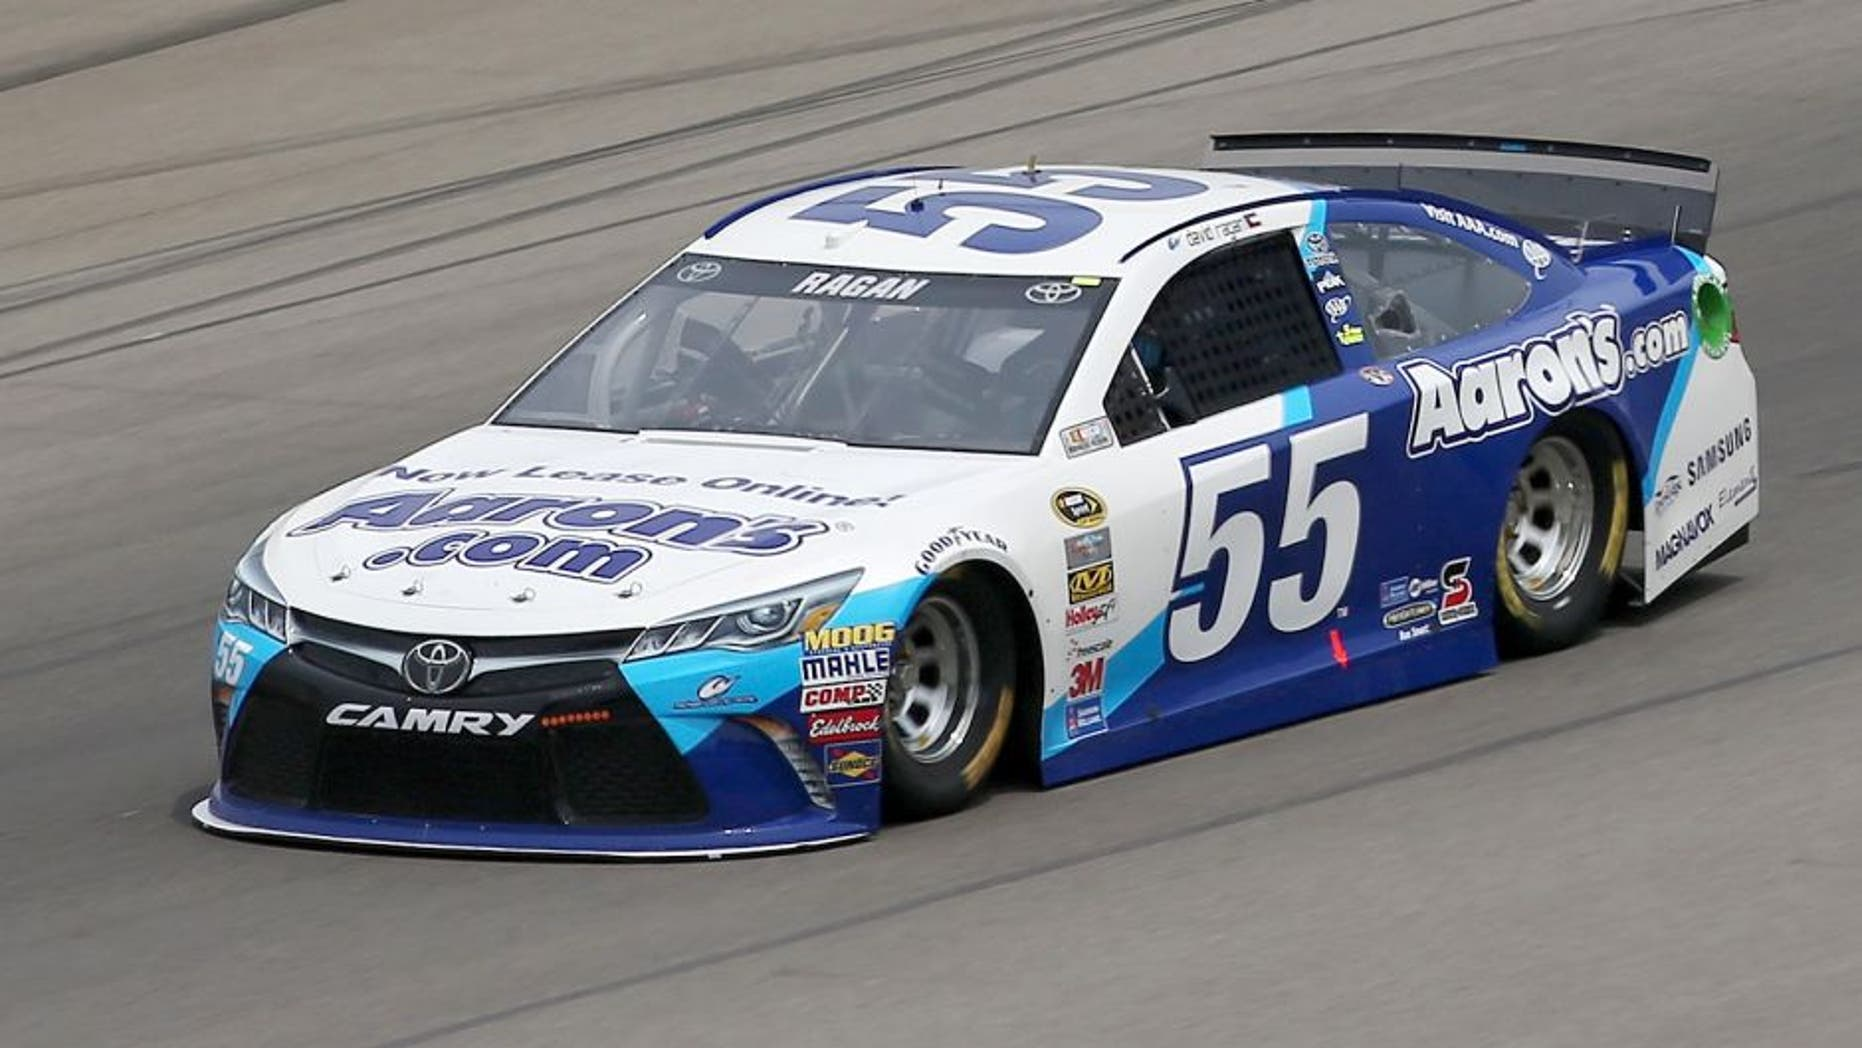 BROOKLYN, MI - AUGUST 14: David Ragan drives the #55 Aaron's Dream Machine Online Version Toyota during practice for the NASCAR Sprint Cup Series Pure Michigan 400 at Michigan International Speedway on August 14, 2015 in Brooklyn, Michigan. (Photo by Sean Gardner/NASCAR via Getty Images)